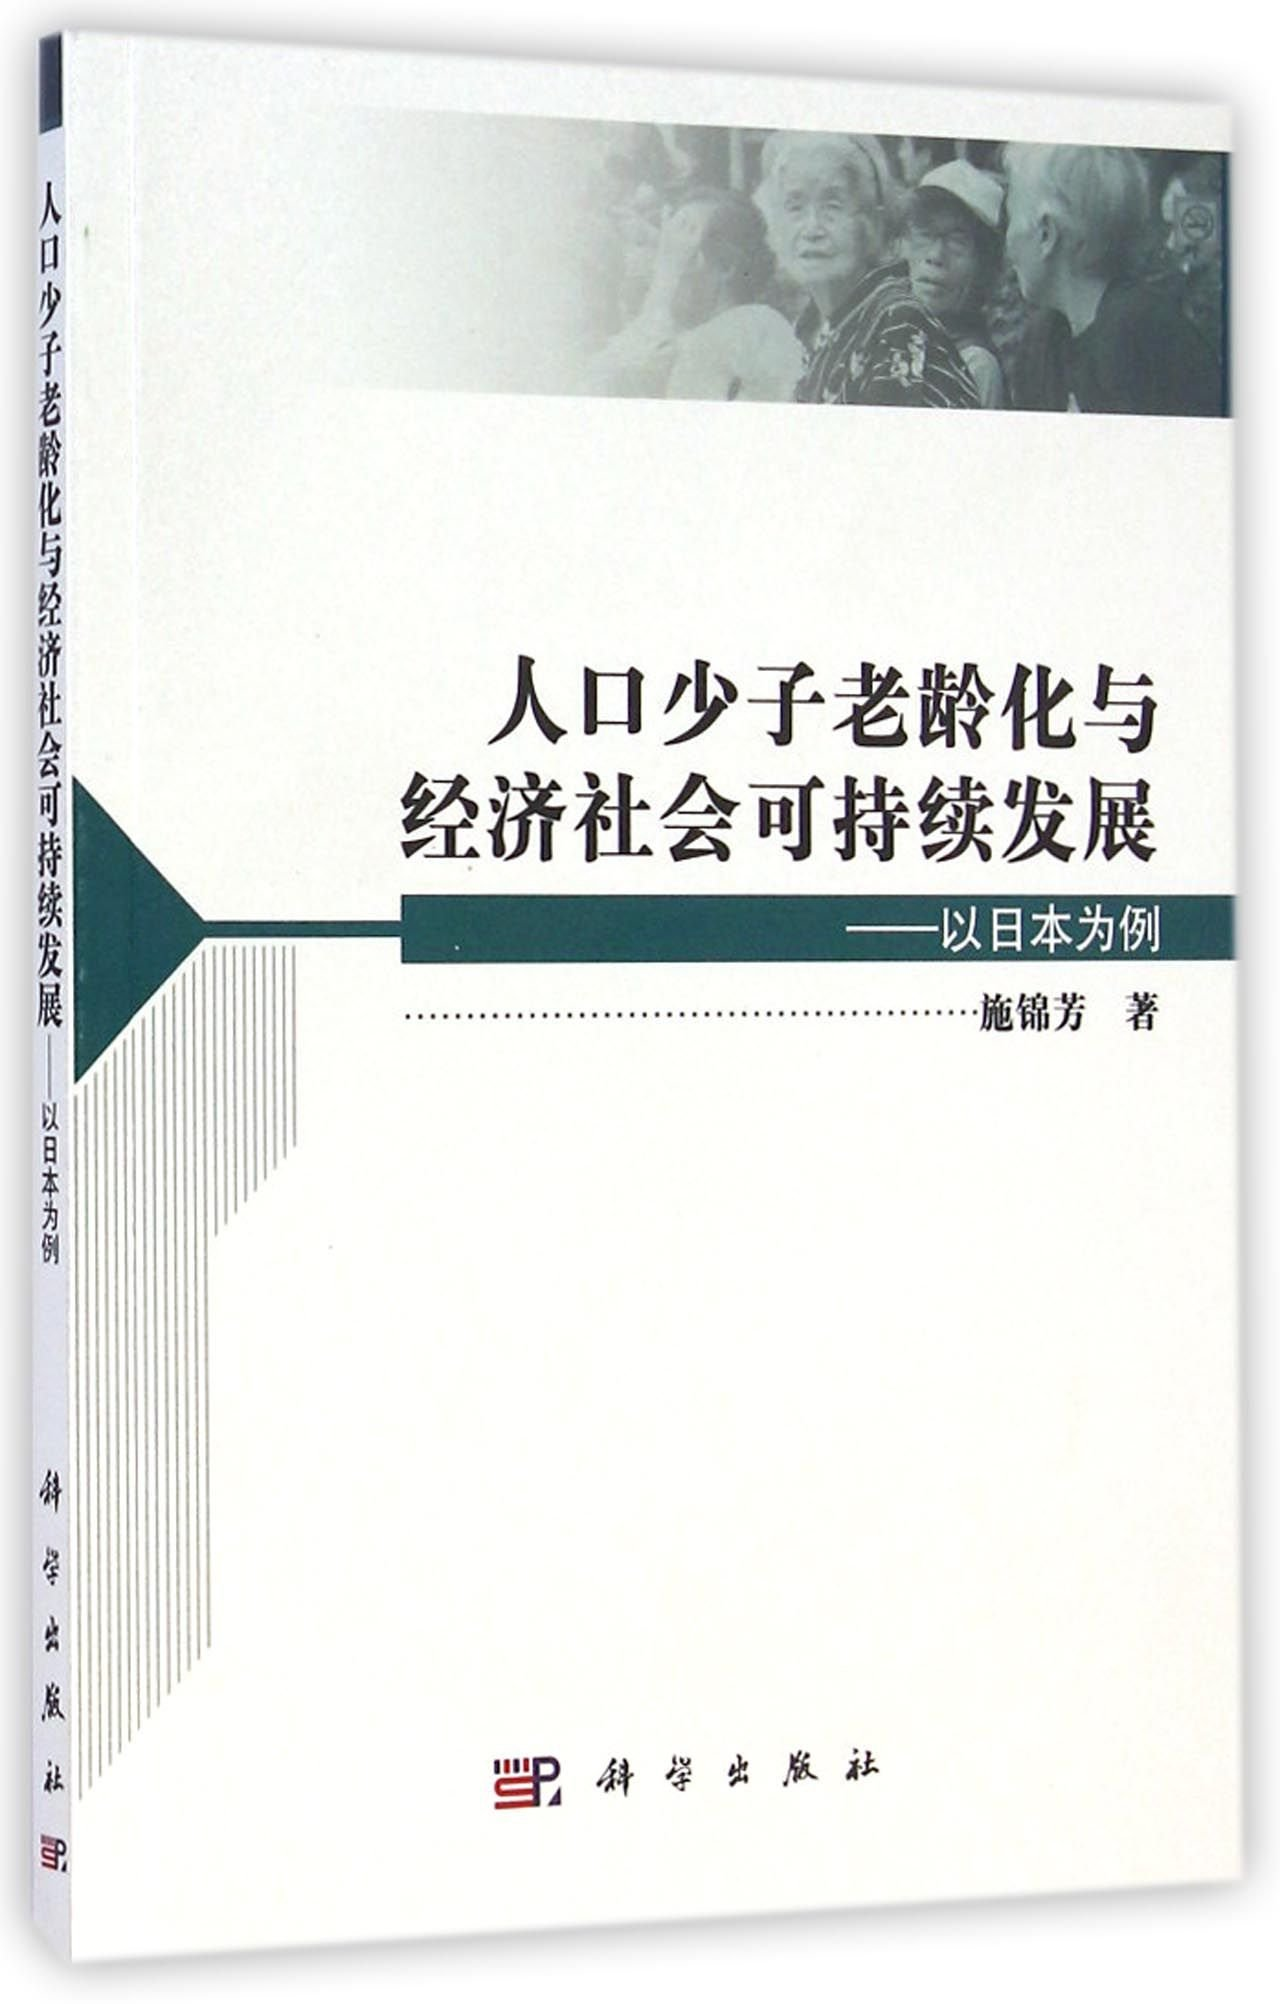 Aging Population with Low Birth Rate and Economic Society Sustainable Development - Take Japan for Example (Chinese Edition) PDF Text fb2 book